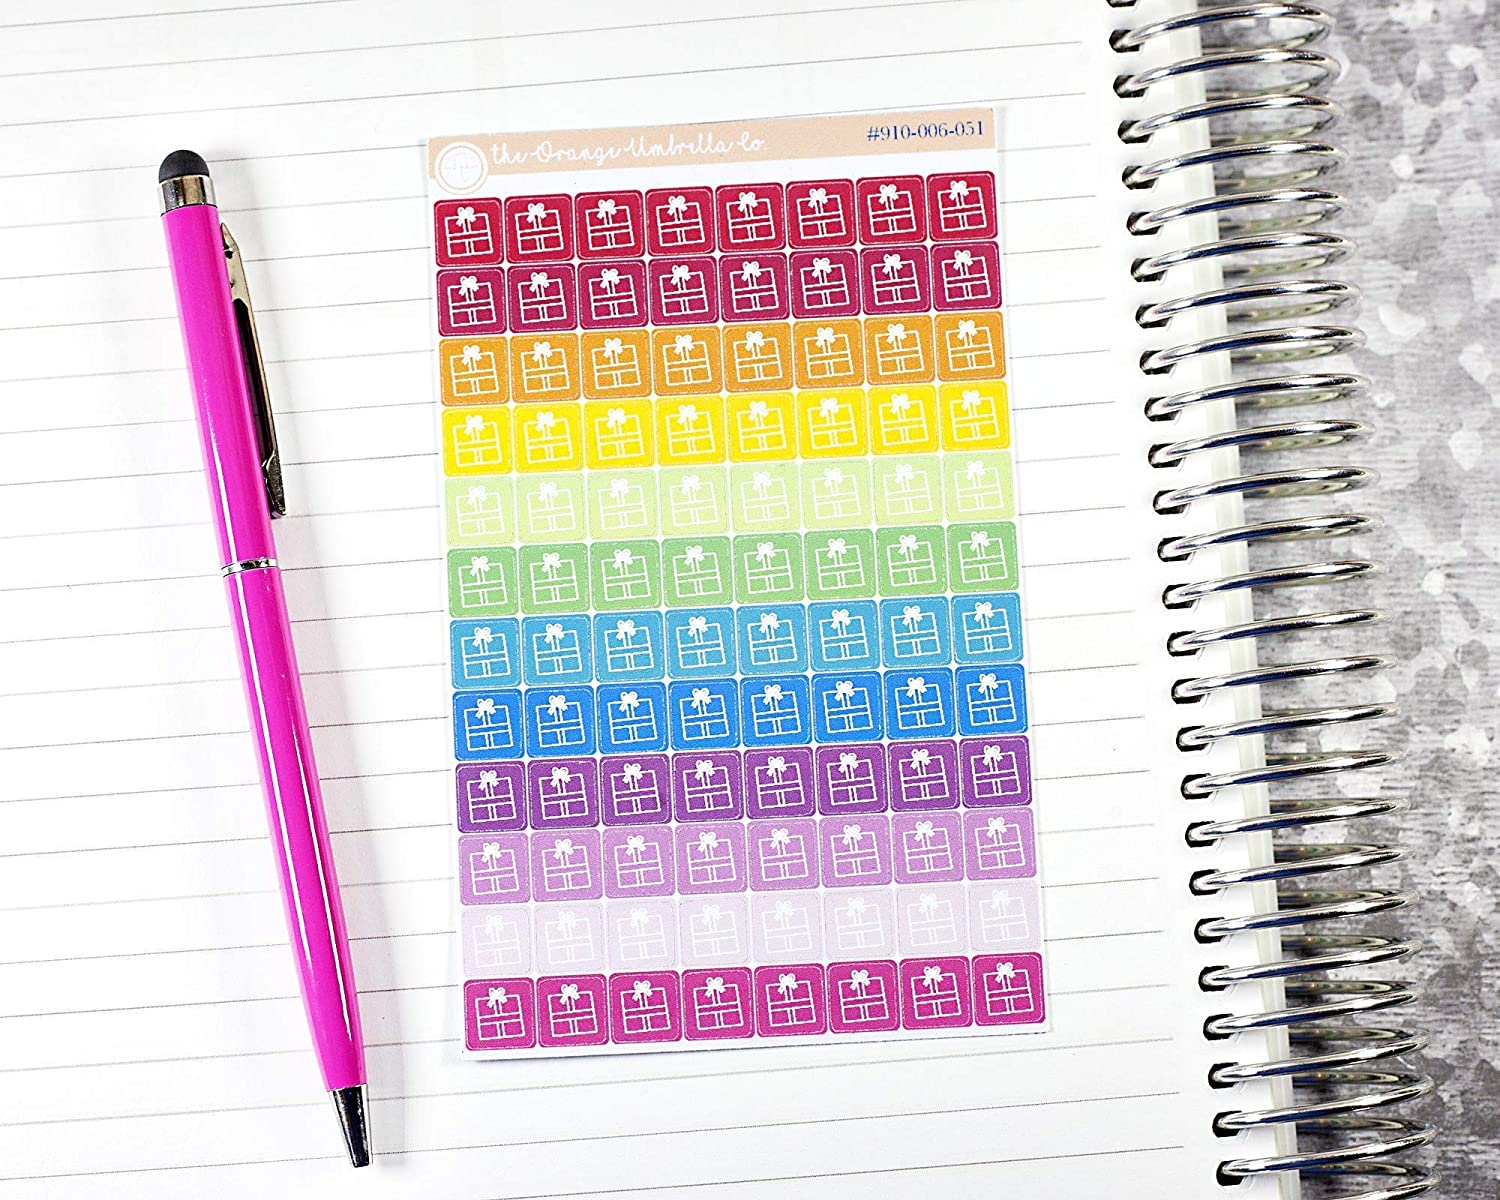 #910-006-051-WH Gift Icon Planner Stickers Gifting Tracking Planner Stickers Present Purchase Tracker Stickers